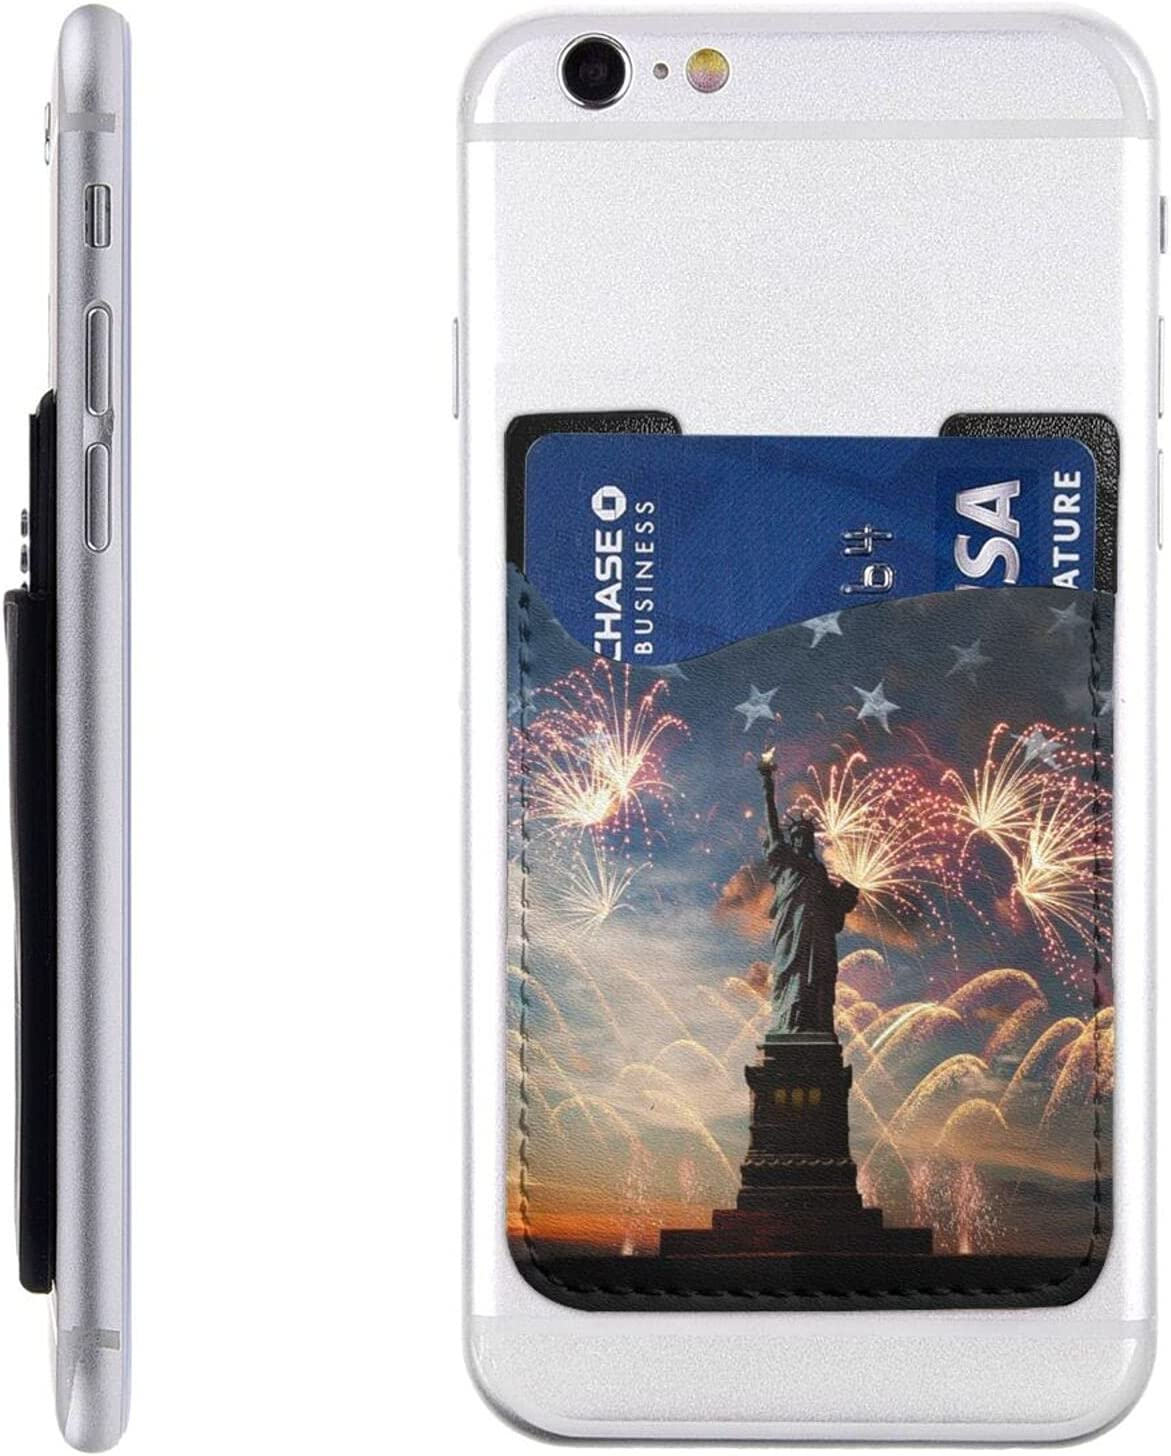 Statue of Liberty Phone Card Max 44% OFF Holder Wal On Max 75% OFF Stick Cell